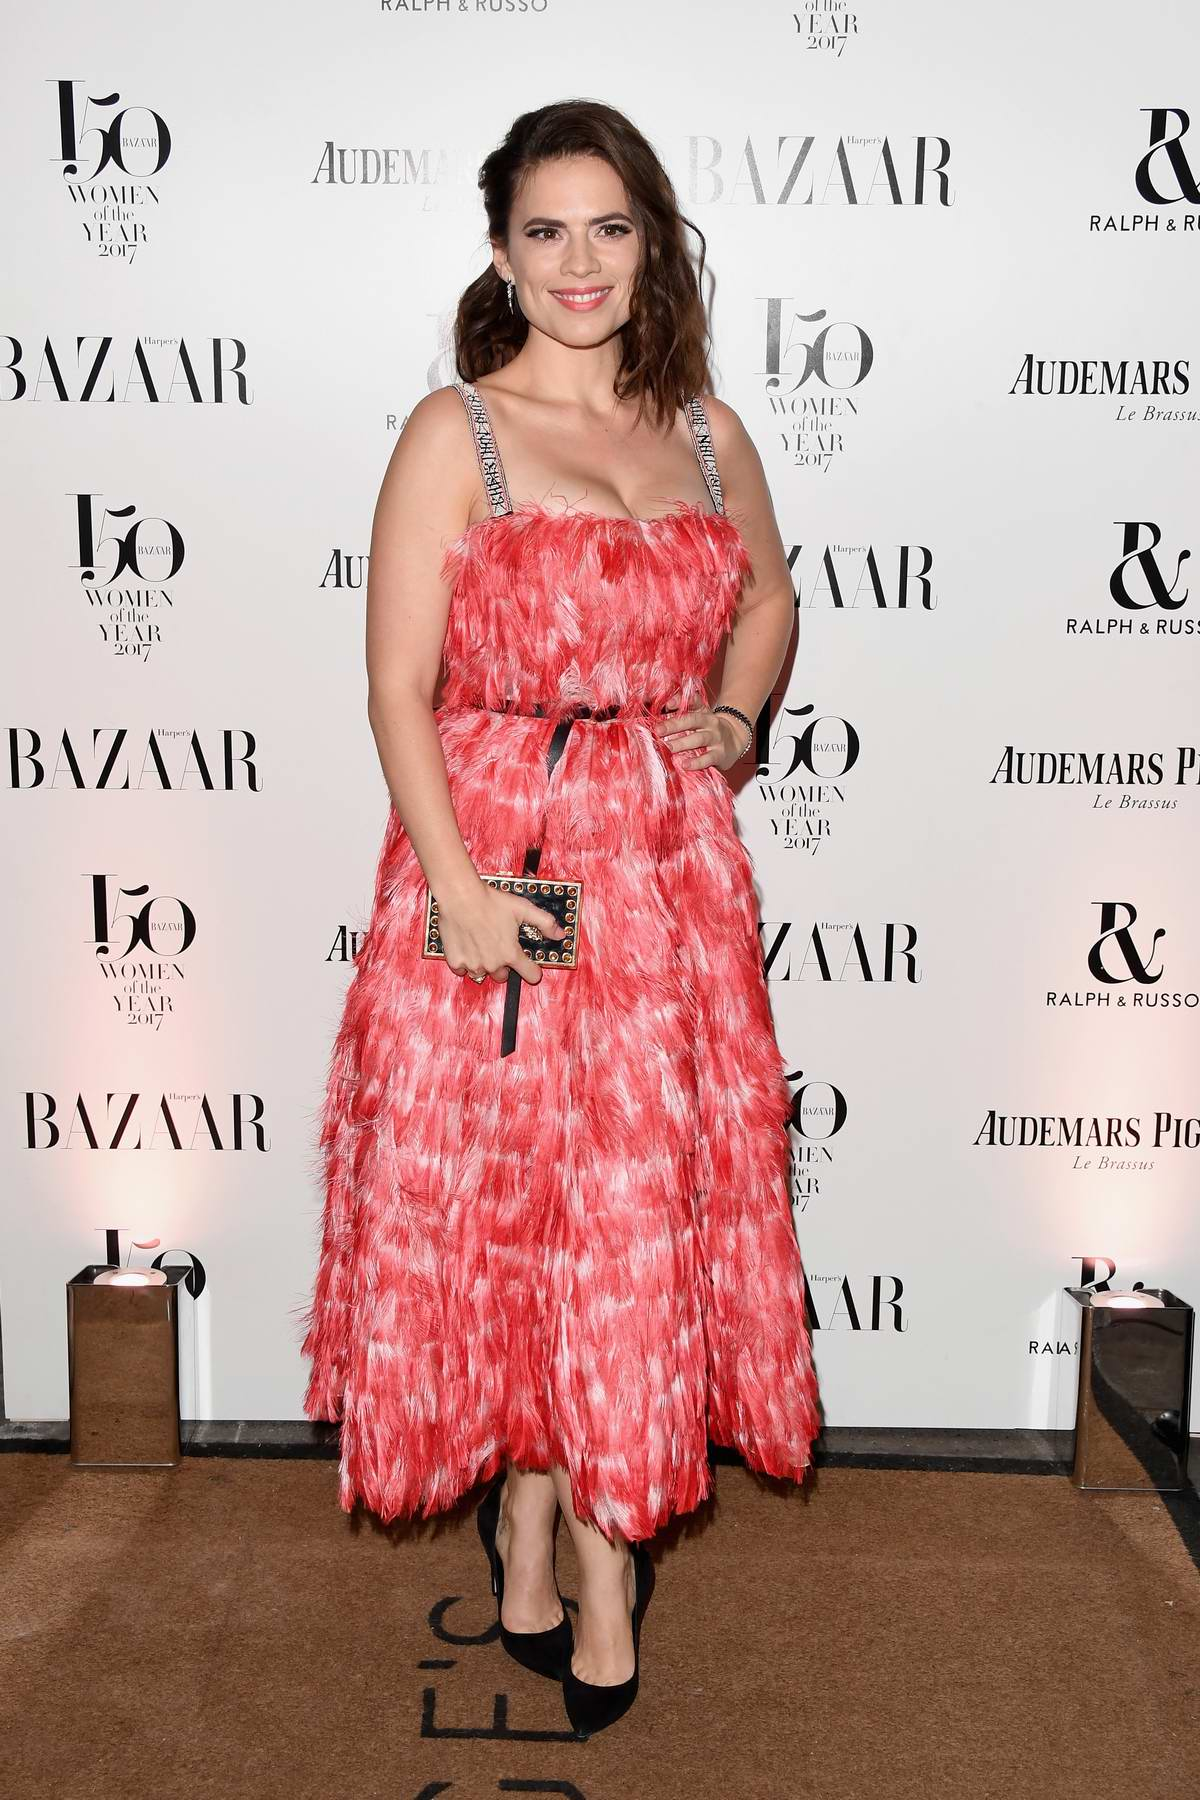 Hayley Atwell at the Harper's Bazaar Woman of the Year Awards in London